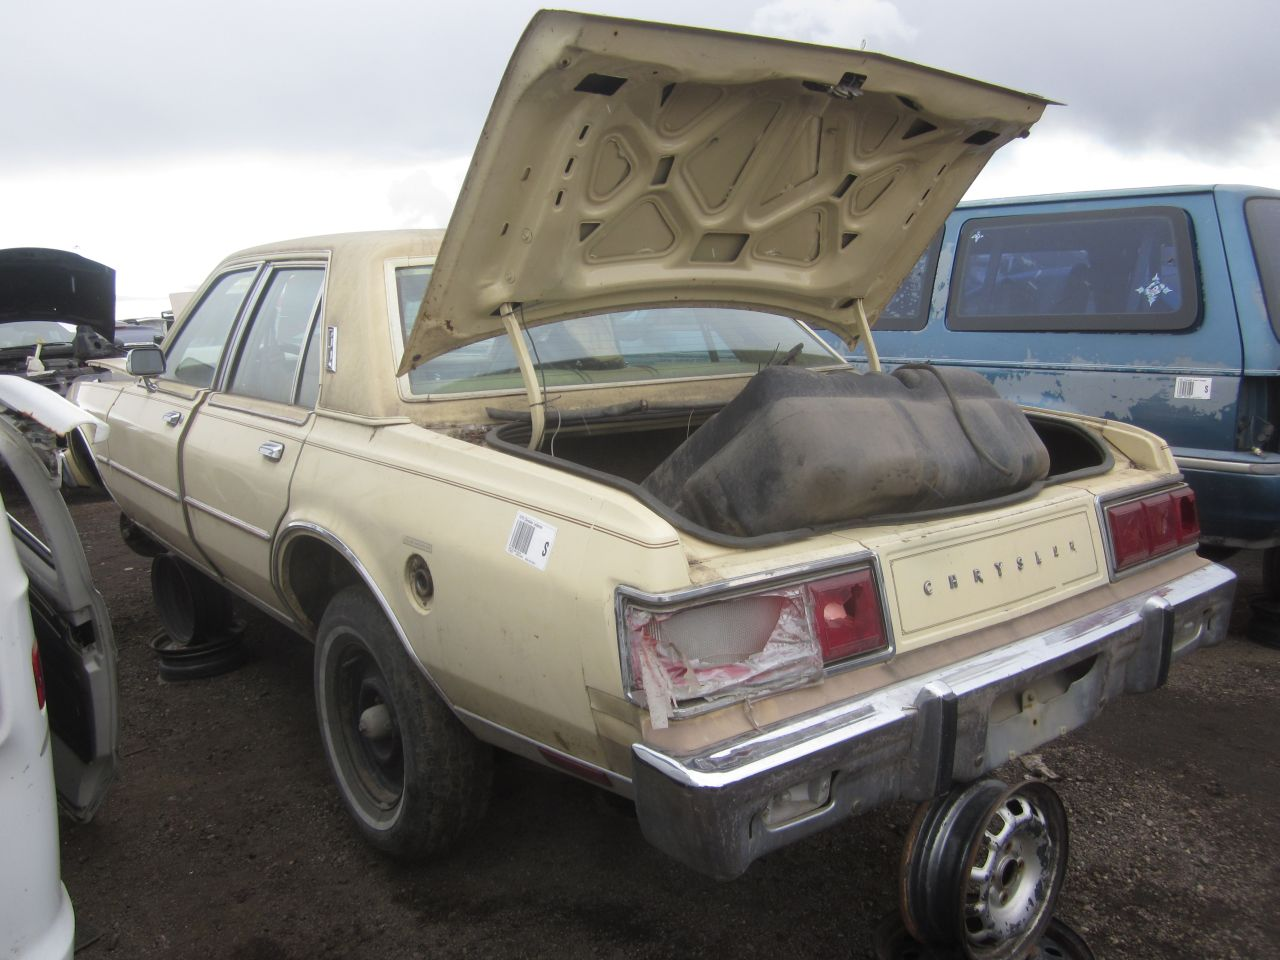 Junkyard Find 1979 Chrysler Lebaron The Truth About Cars 1989 Power Steering Diagram Wiring